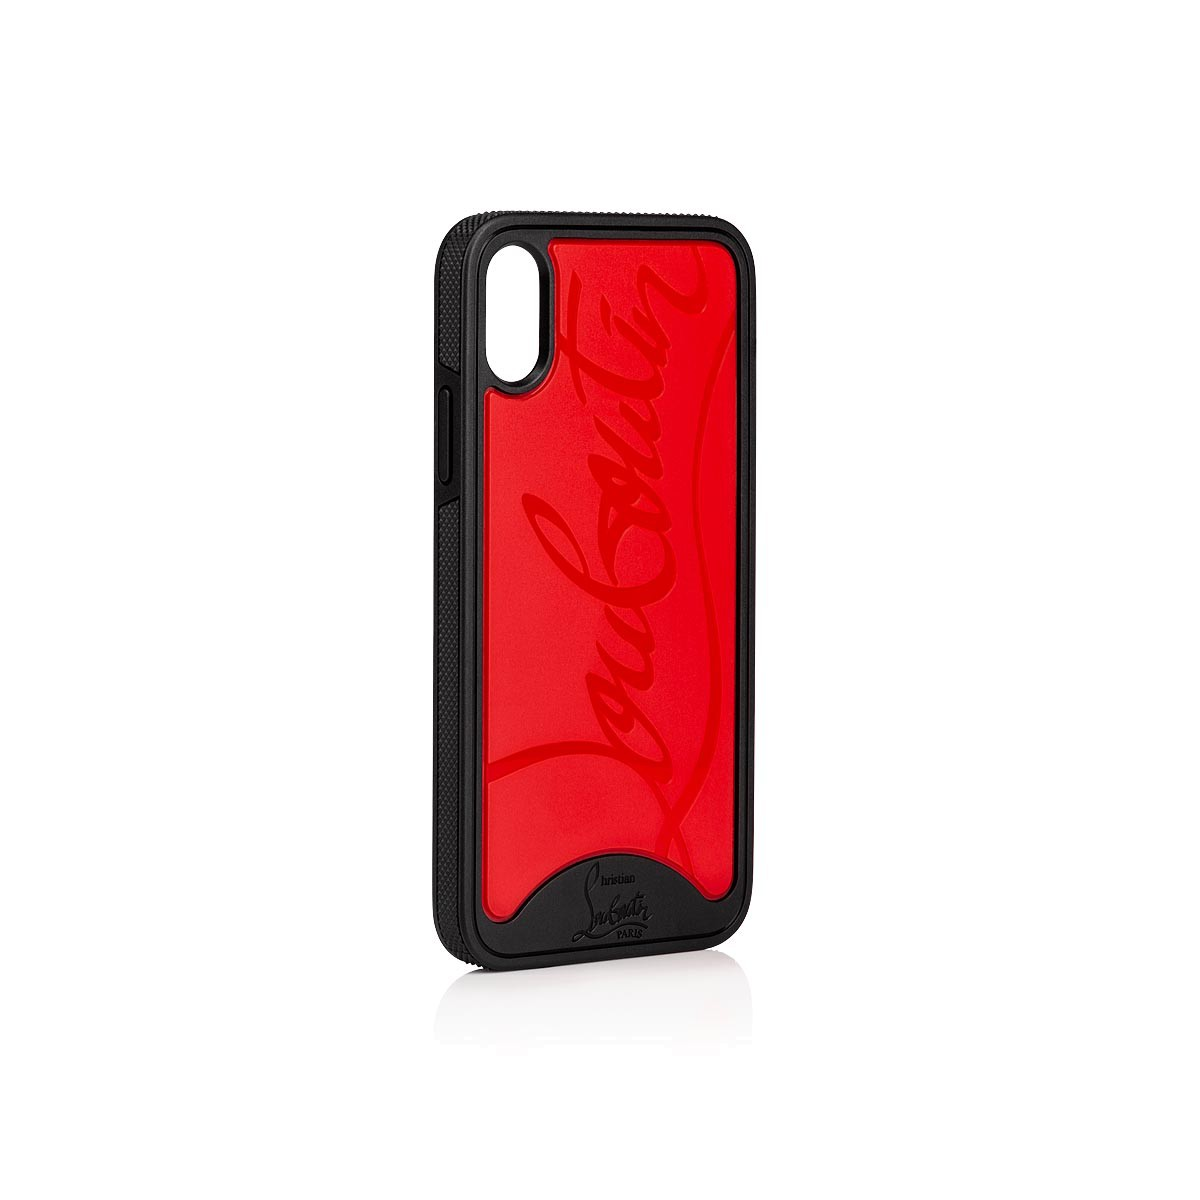 Small Leather Goods - Loubiphone Case Iphone X - Christian Louboutin